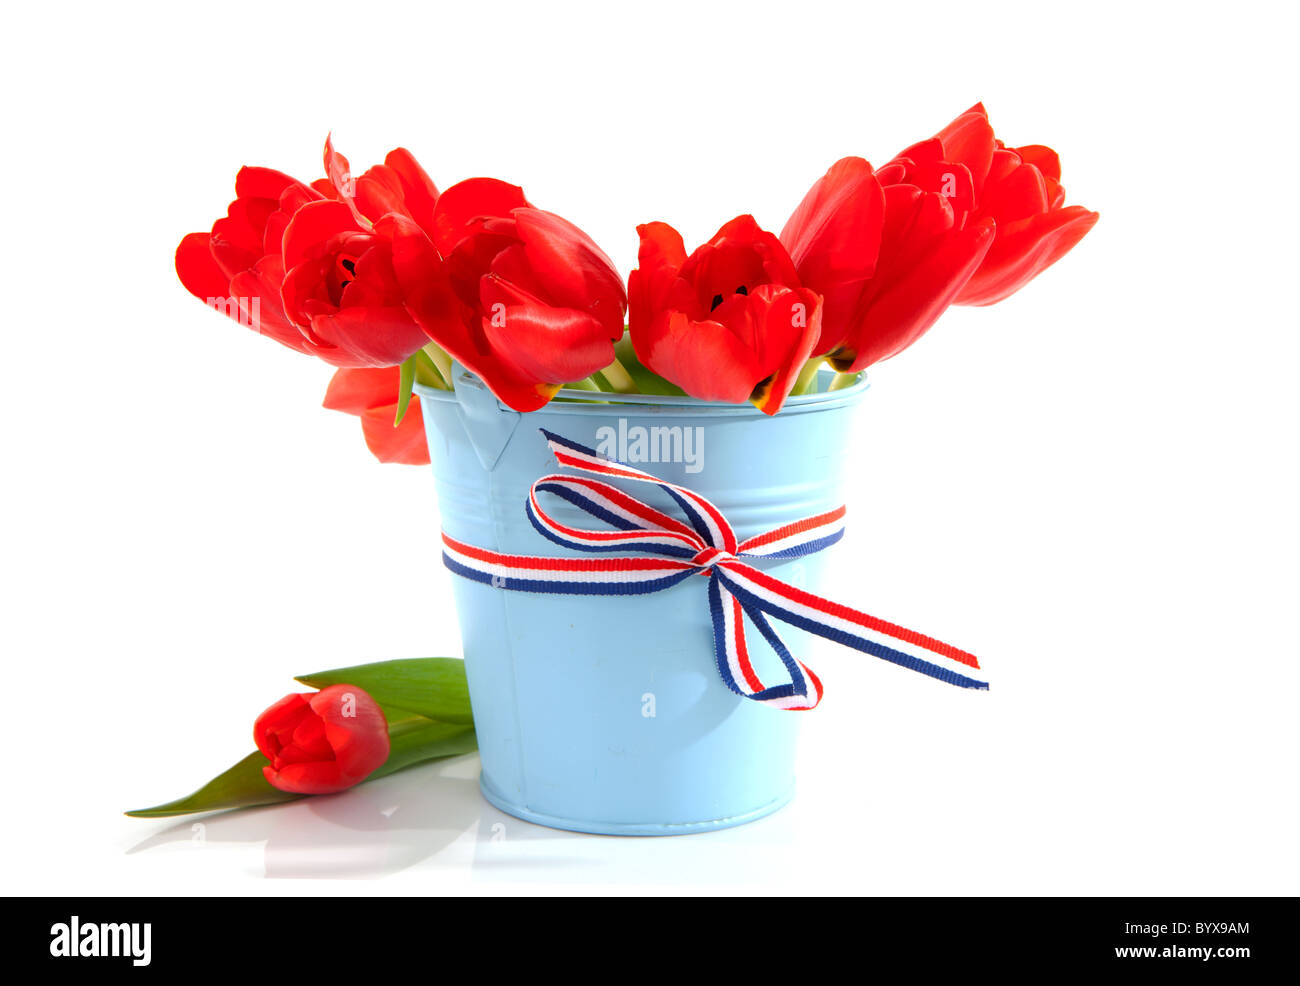 Red white blue flowers flag stock photos red white blue flowers blue bucket with red dutch tulips over white background stock image mightylinksfo